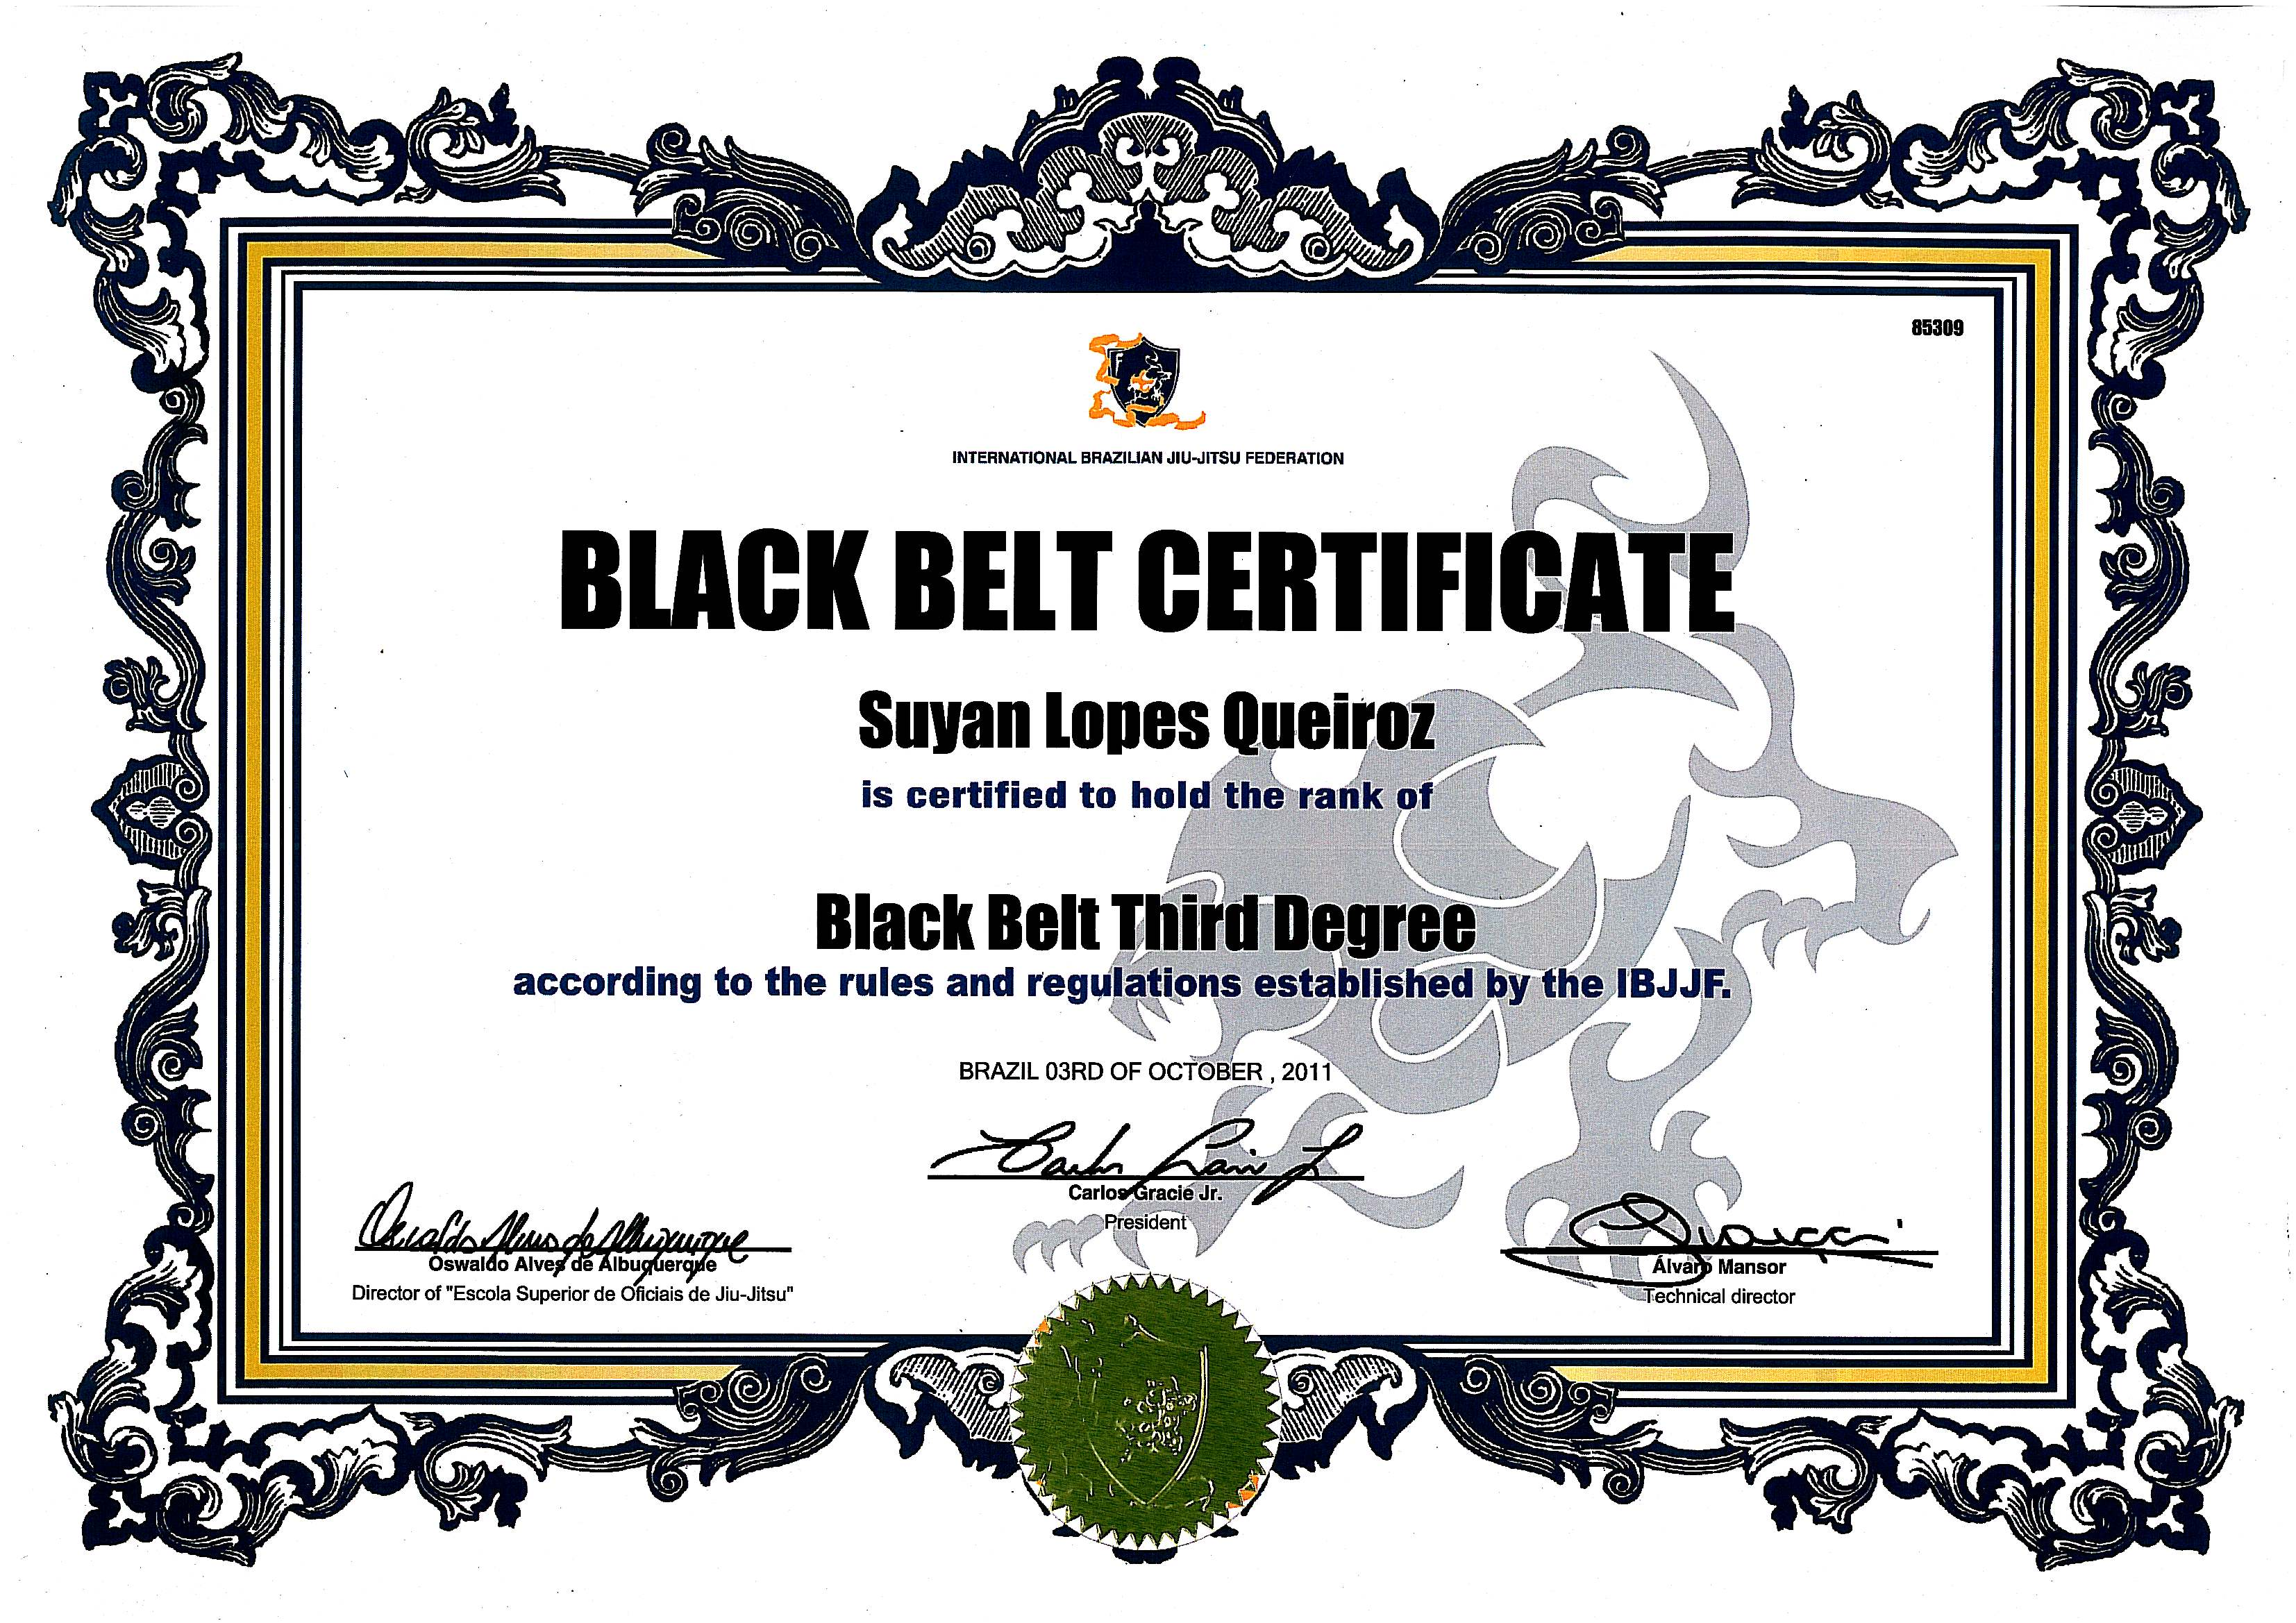 six sigma black belt certificate template - black belt certificates printable pictures to pin on